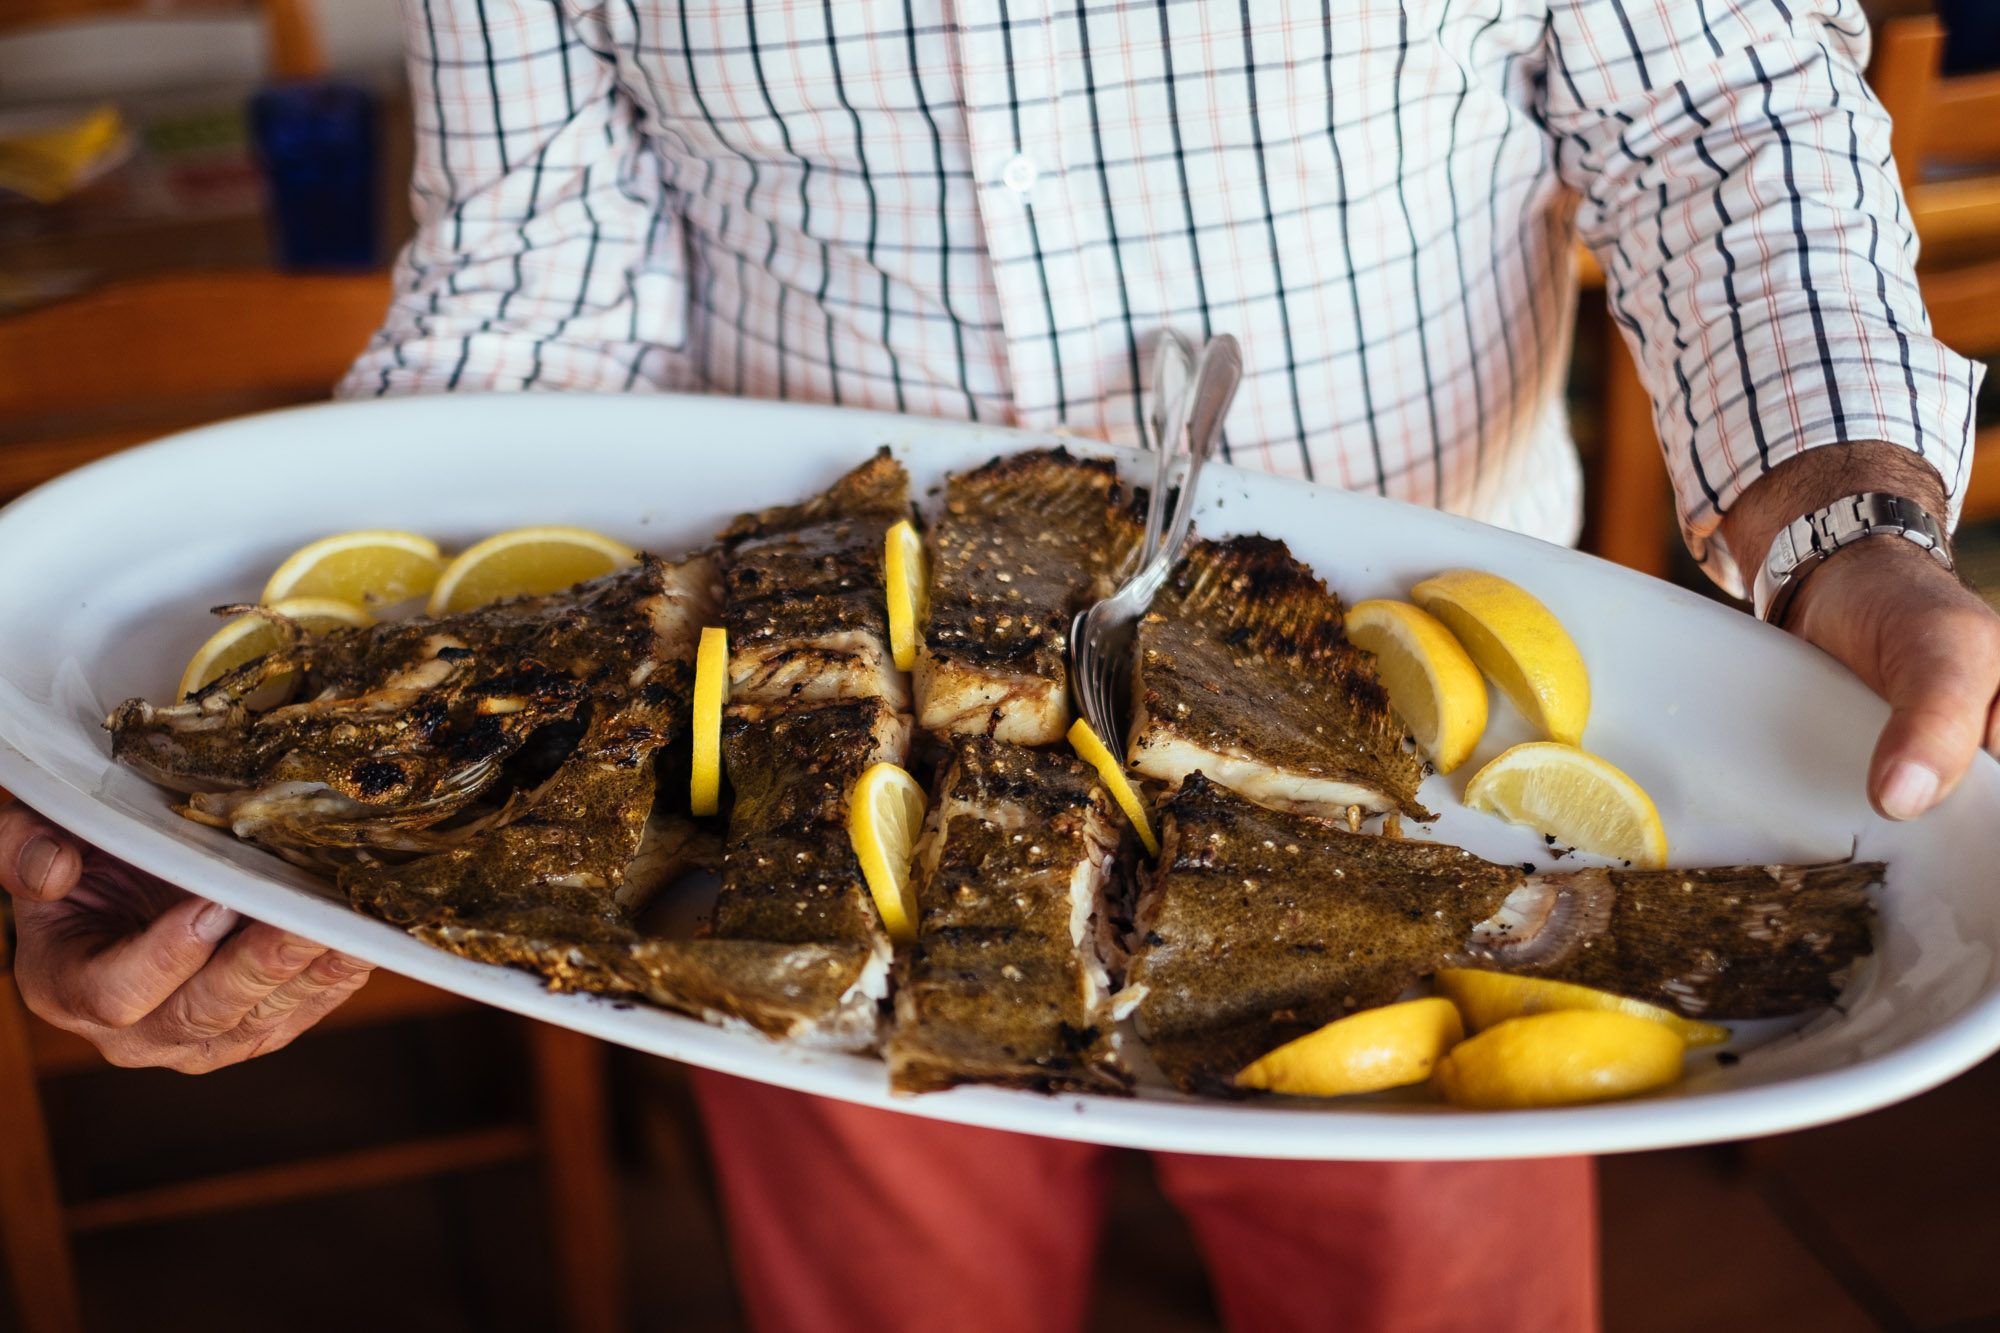 Foodie Portugal Travel: Grilled Turbot in the Alentejo - Arte e Sal restaurant, Sines - Emanuele Siracusa Food and Travel Photographer in Portugal